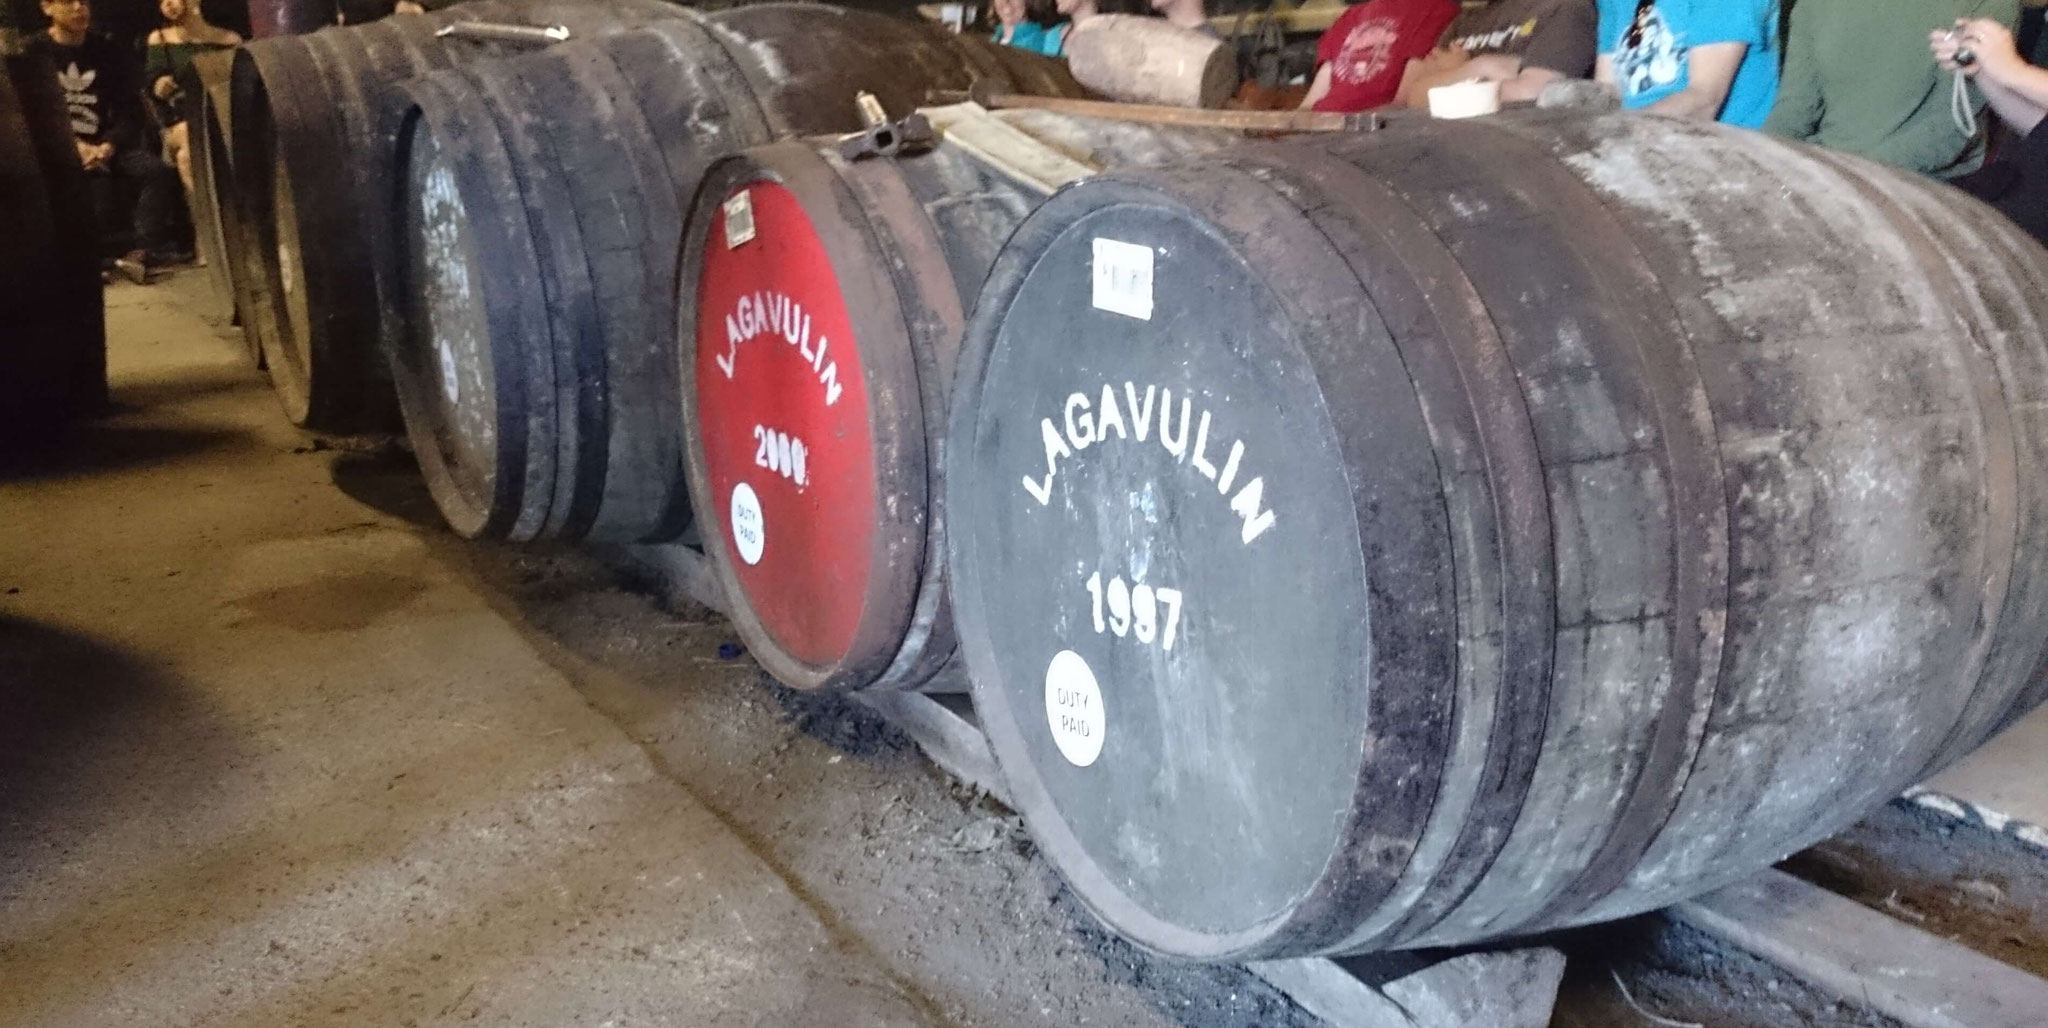 Lagavulin Distillery, Isle of Islay